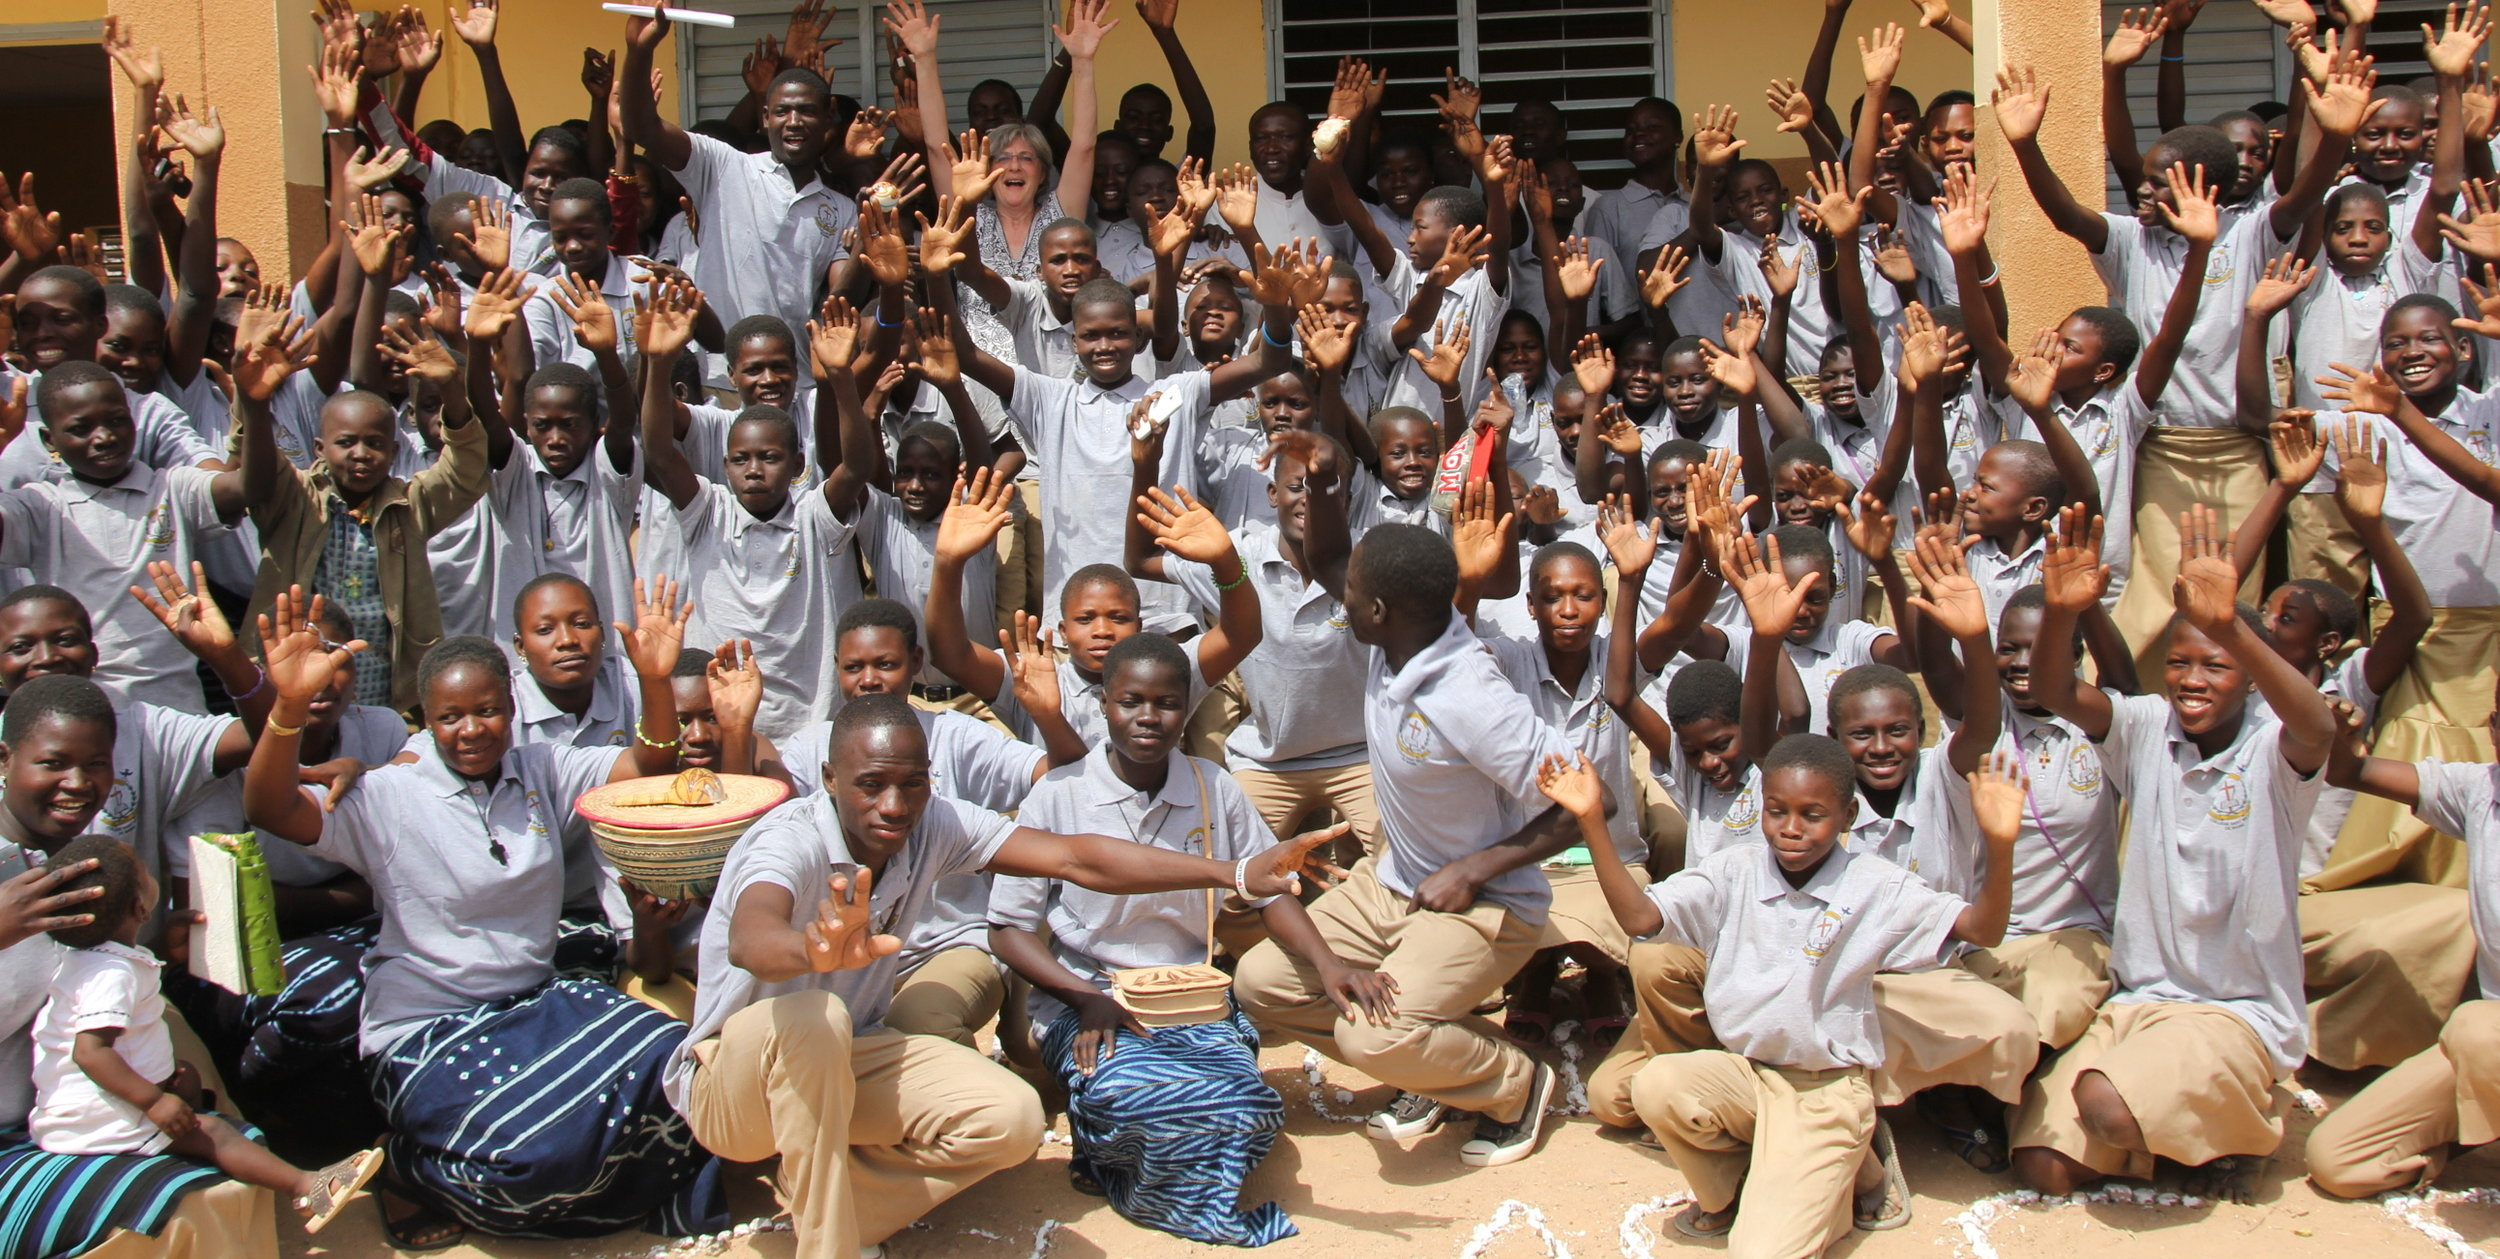 A much-needed secondary school - A primary school, but no secondary school …